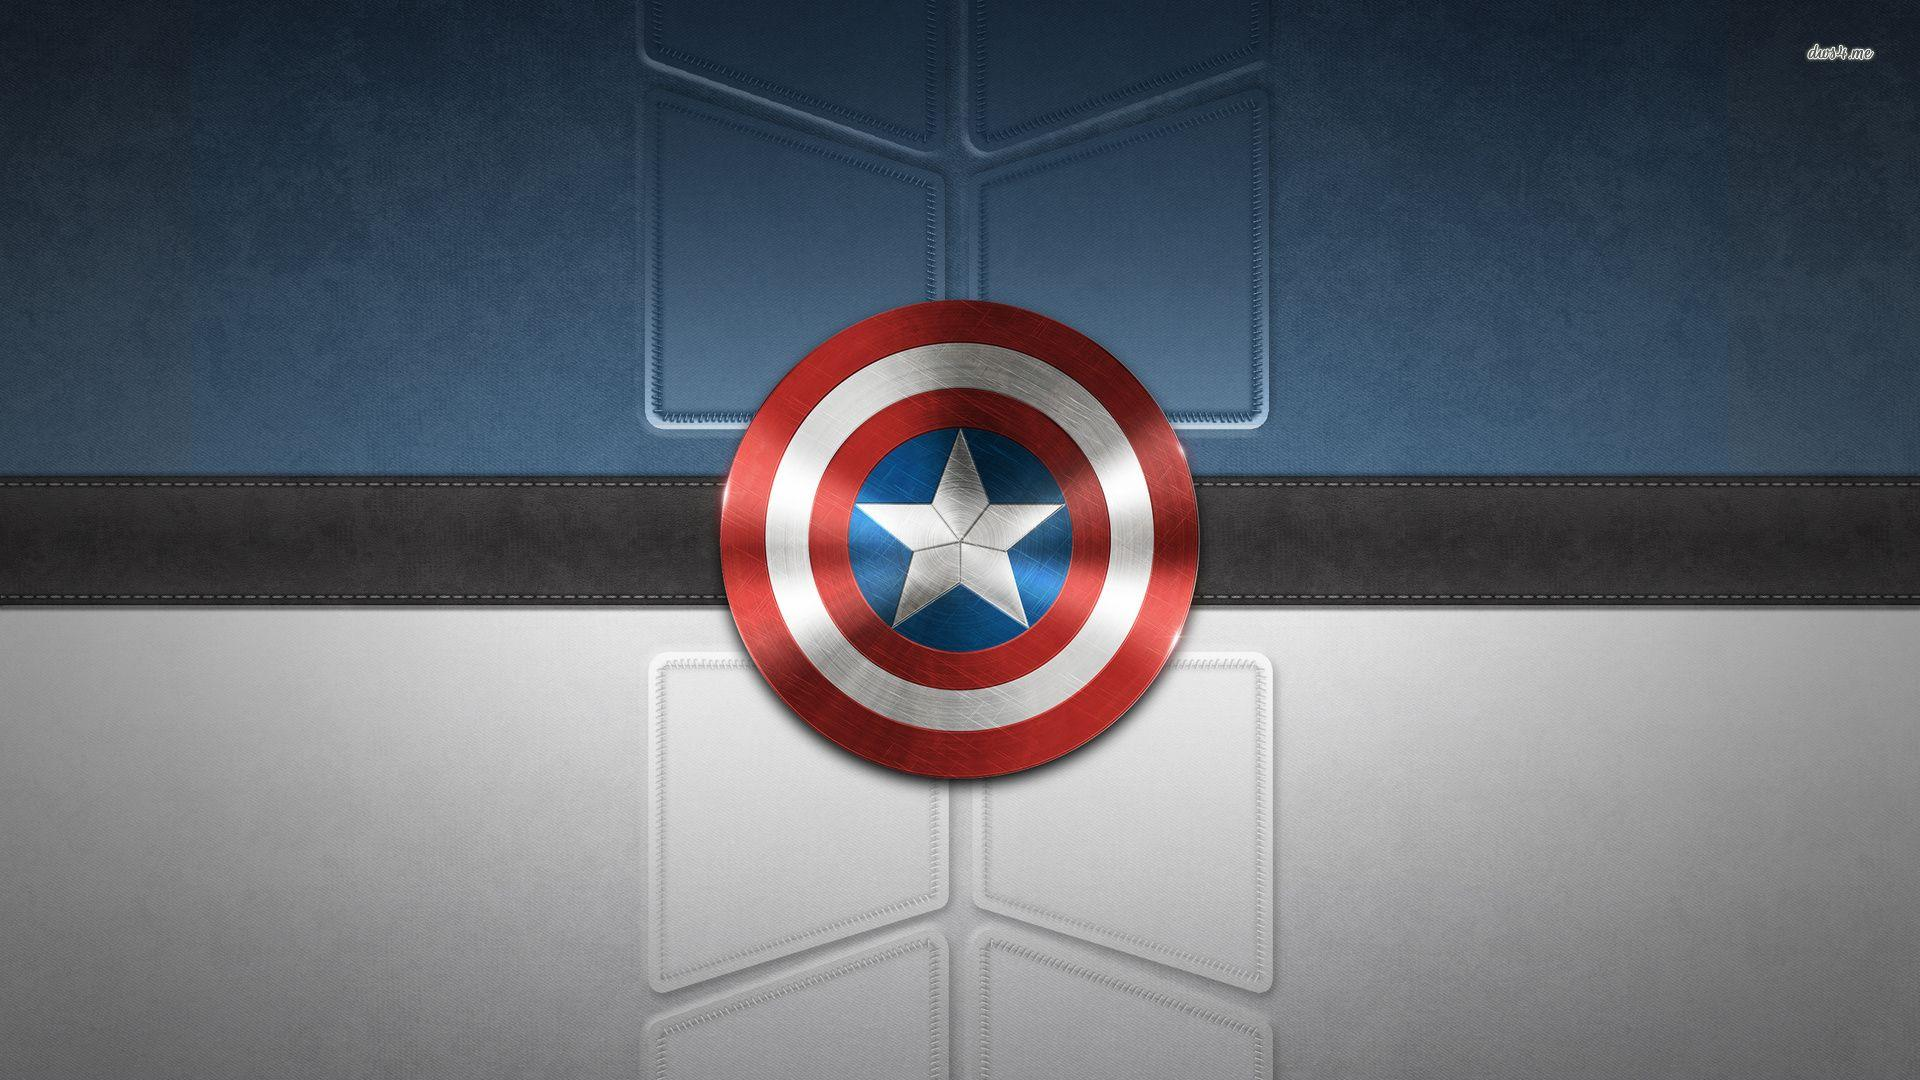 48507 captain america the first avenger shield 1920x1080 movie ...